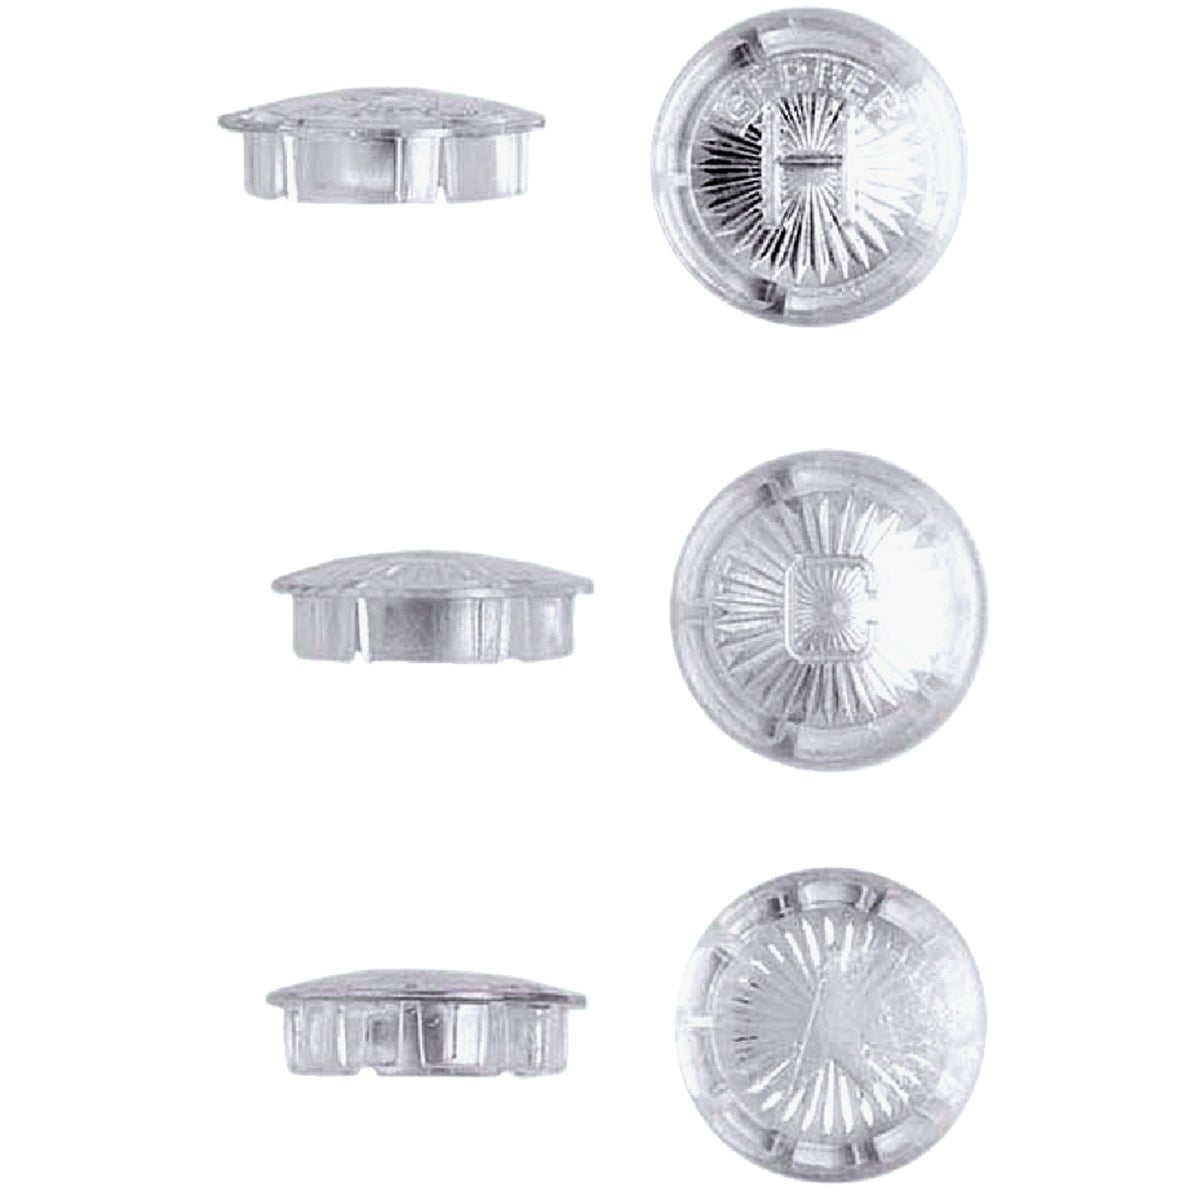 Danco 80674 Index Buttons for Gerber, Acrylic